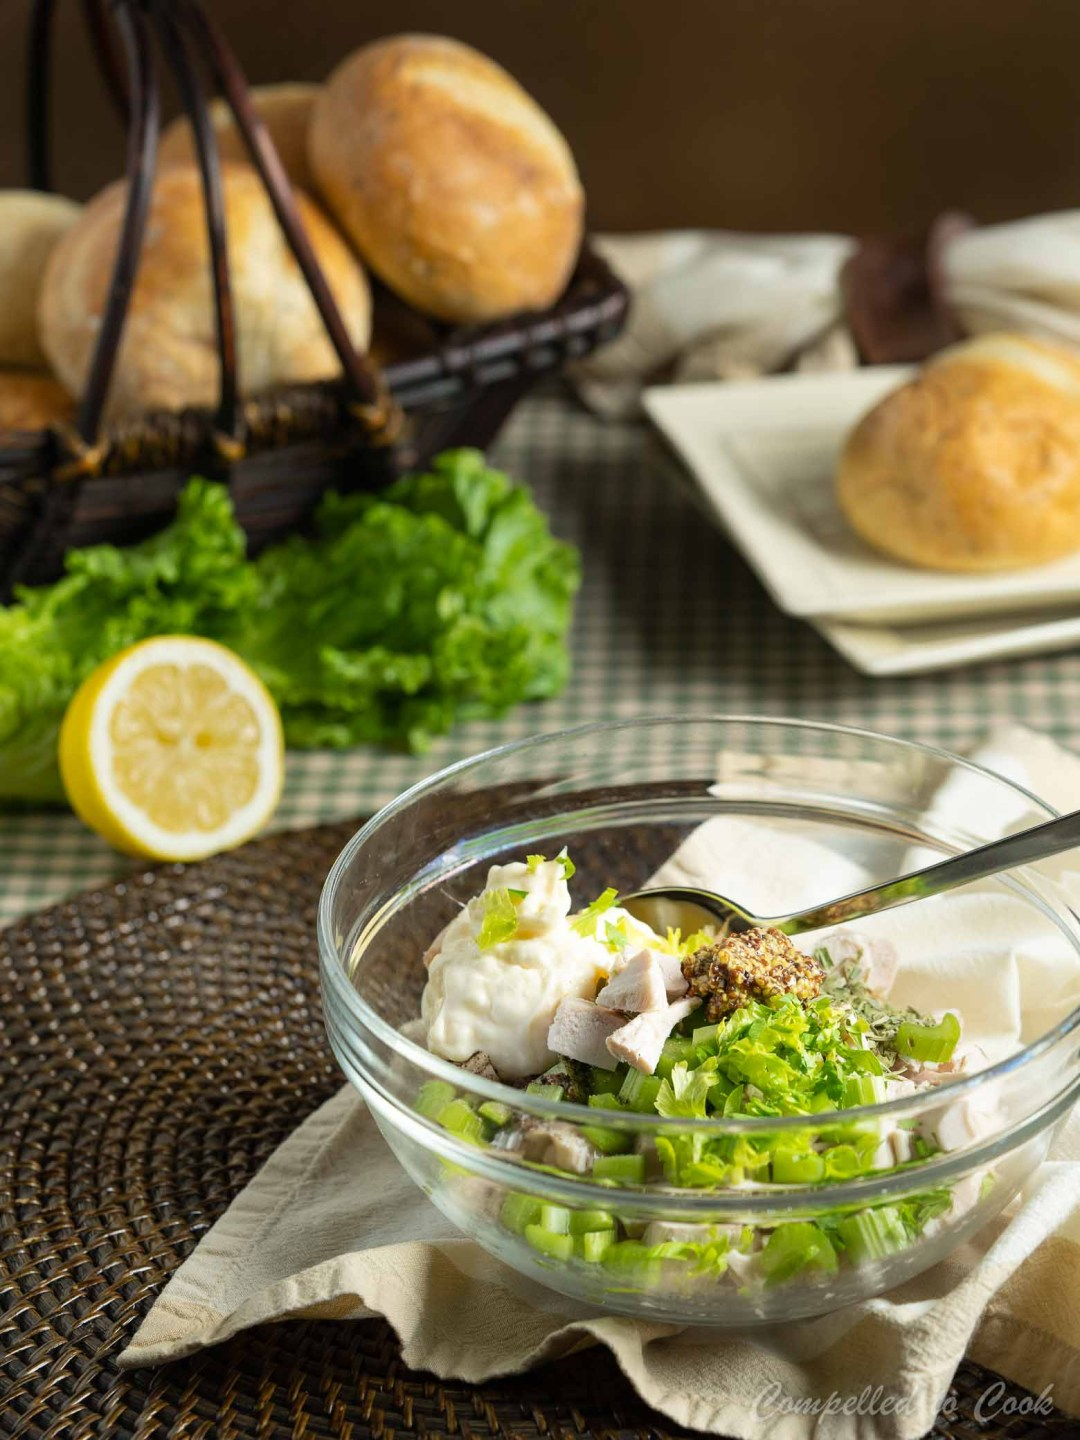 Ingredients for Tarragon Chicken Salad are measured into a glass bowl and ready to be stirred. A basket of buns sits in the background.